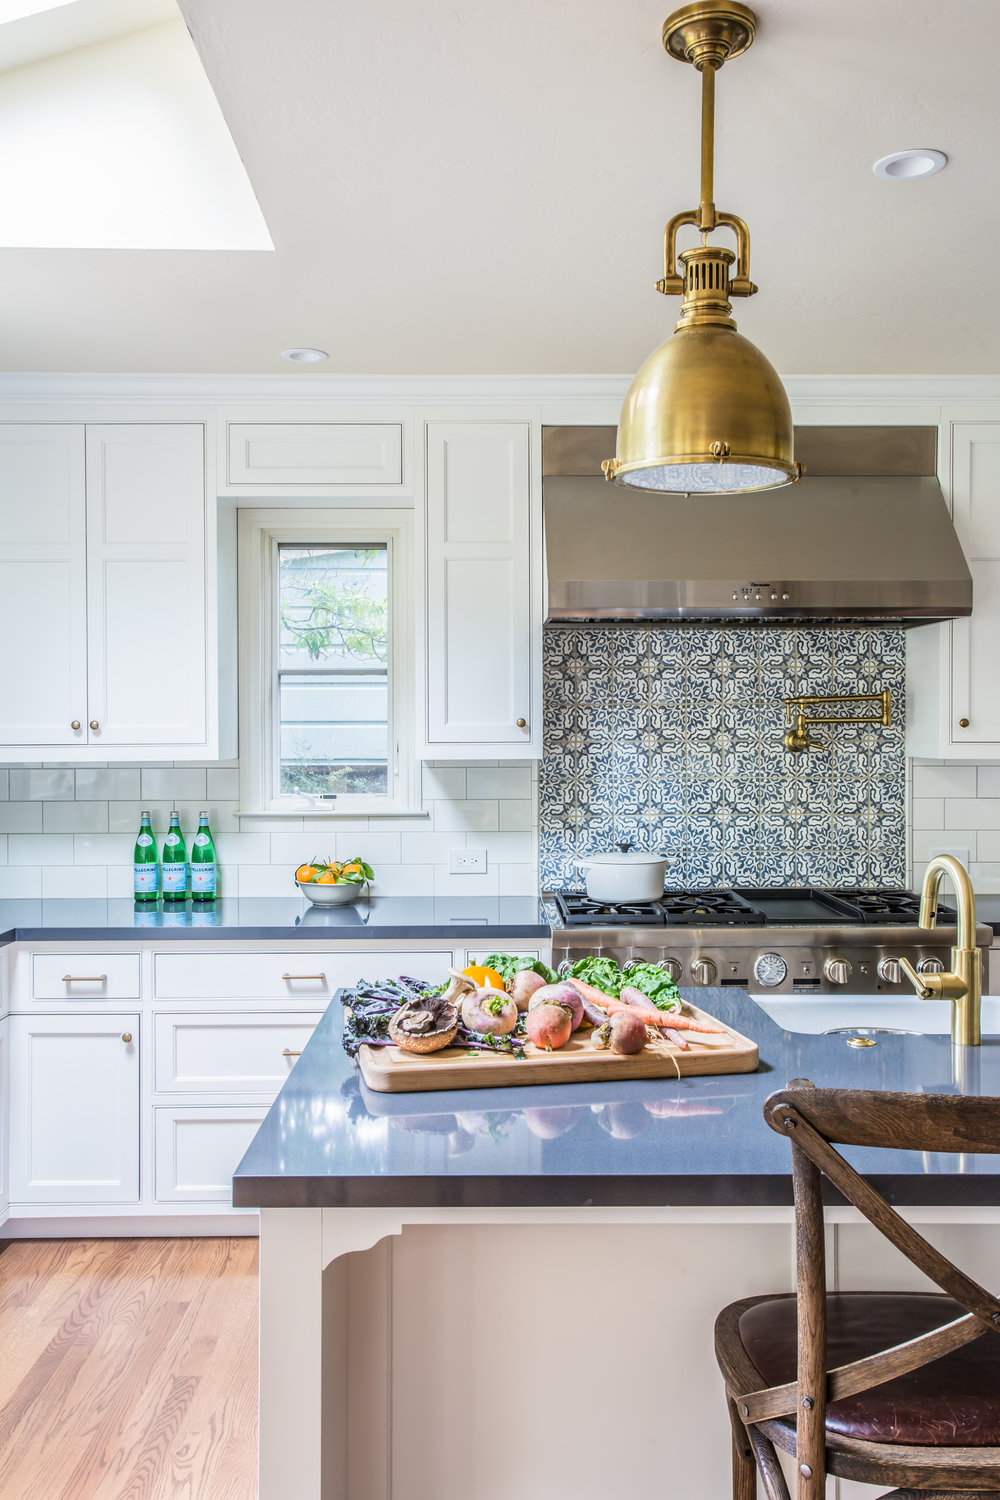 Kitchen photos by Emily Hagopian Photography.